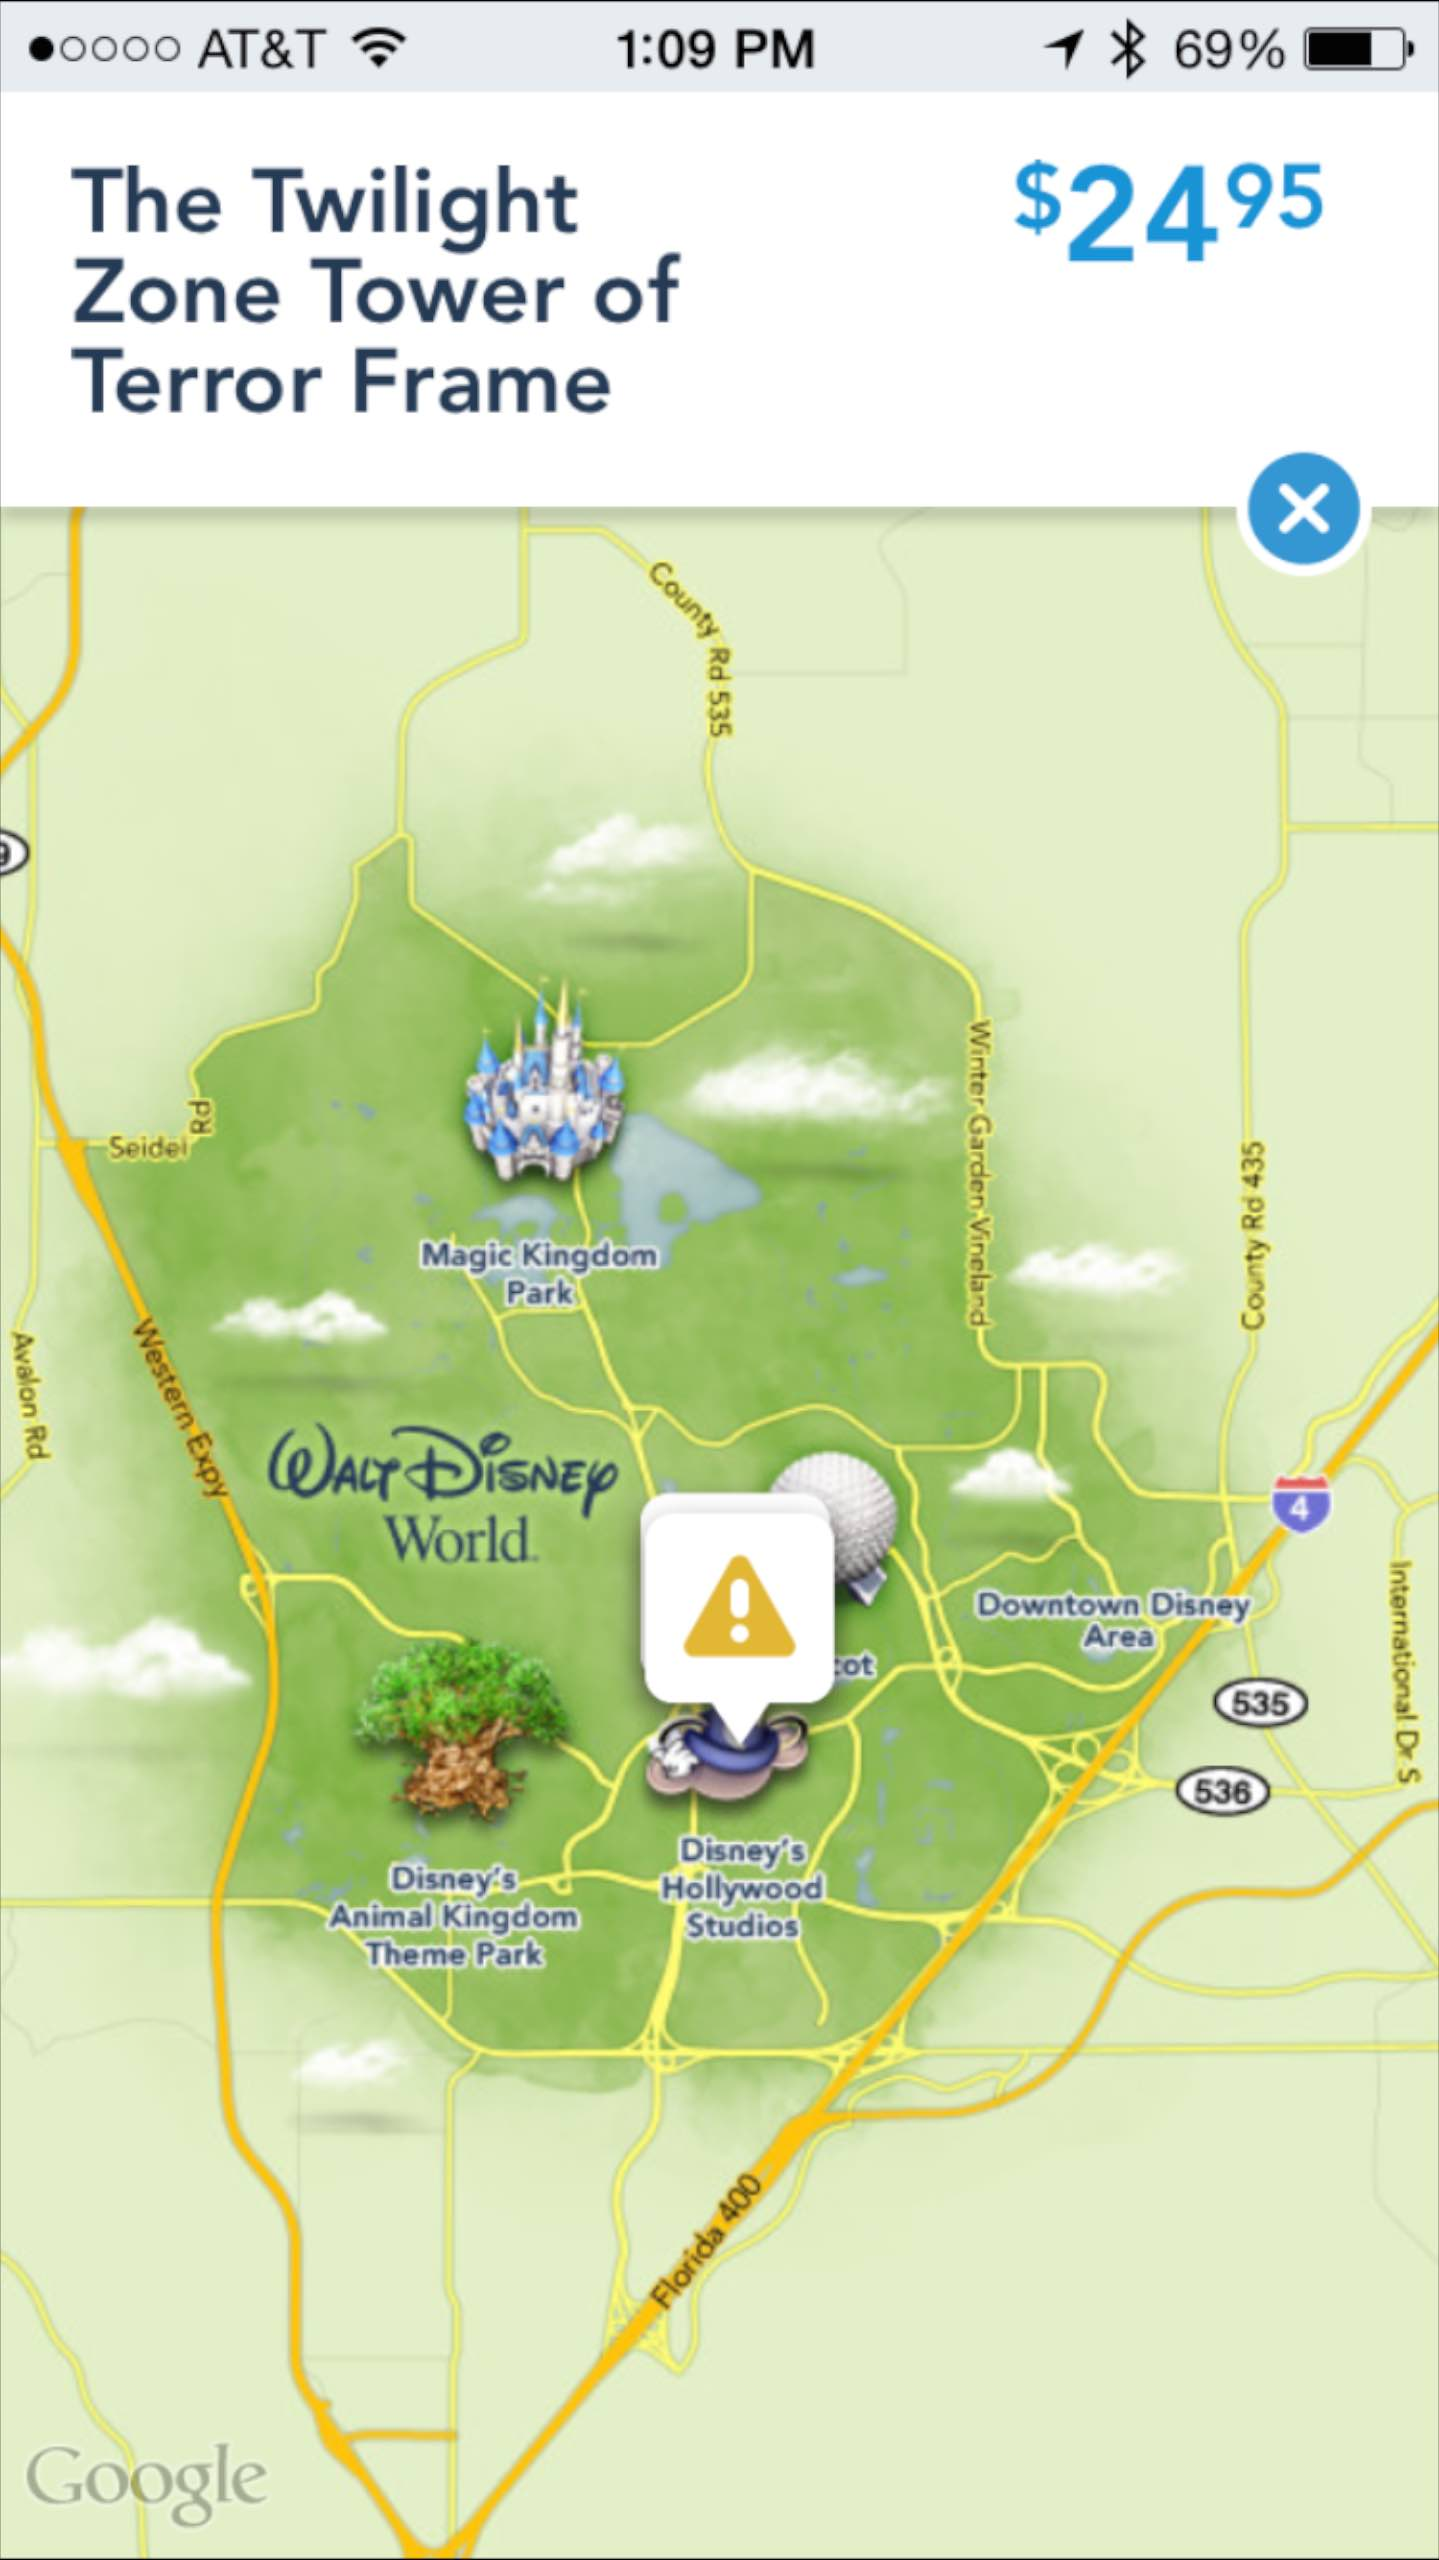 Shop Disney Parks app - Location of selected Tower of Terror item